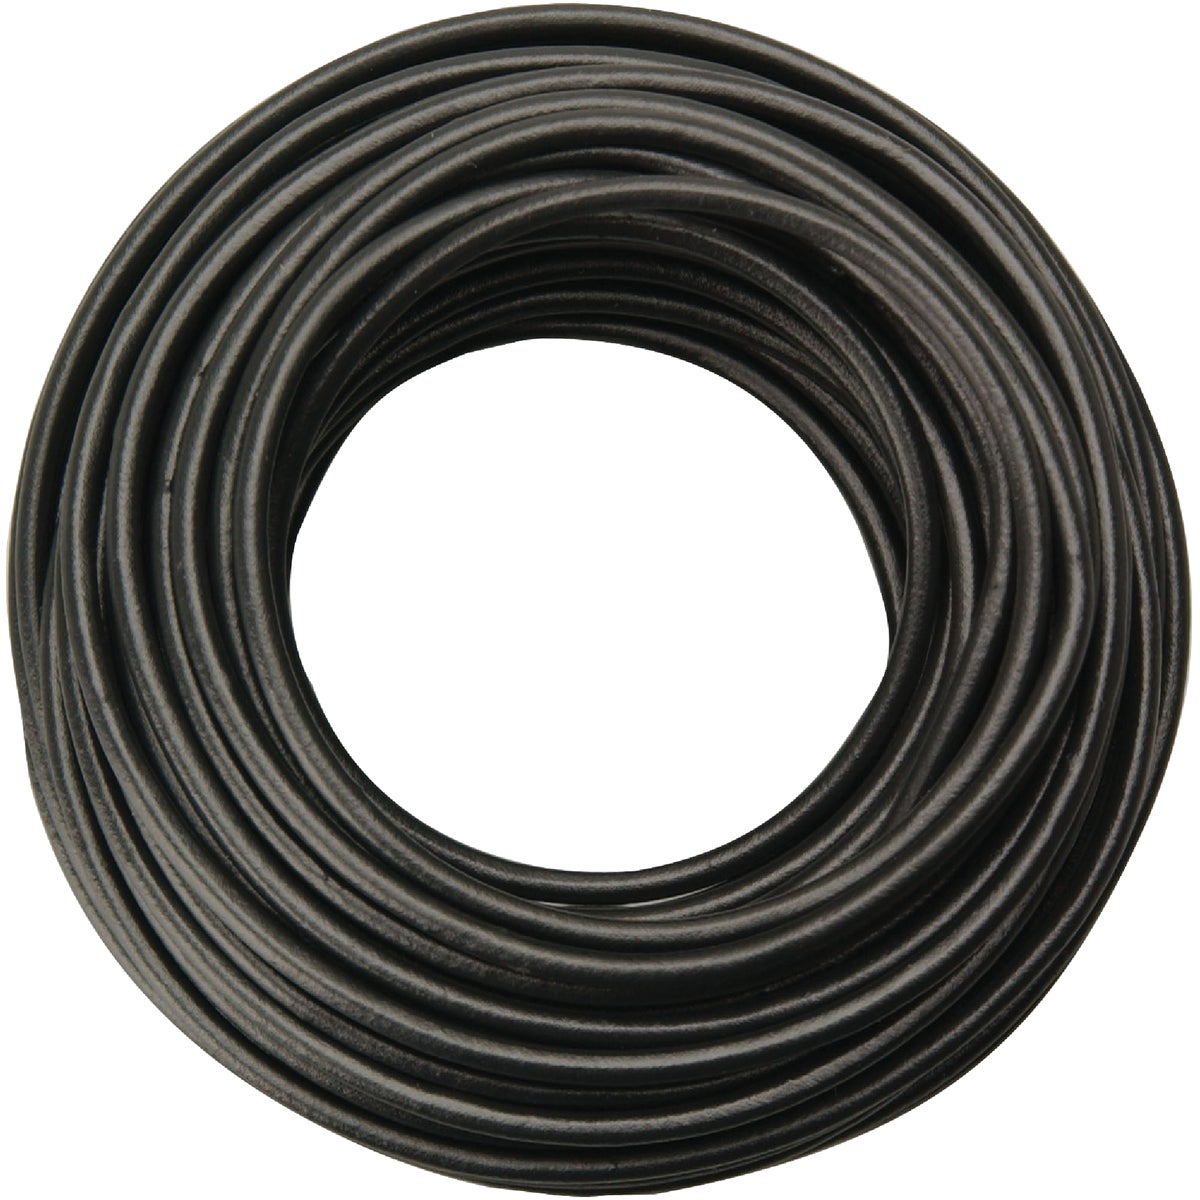 33' 18GA BLK AUTO WIRE - 18-1-11 by Woods Wire Coleman